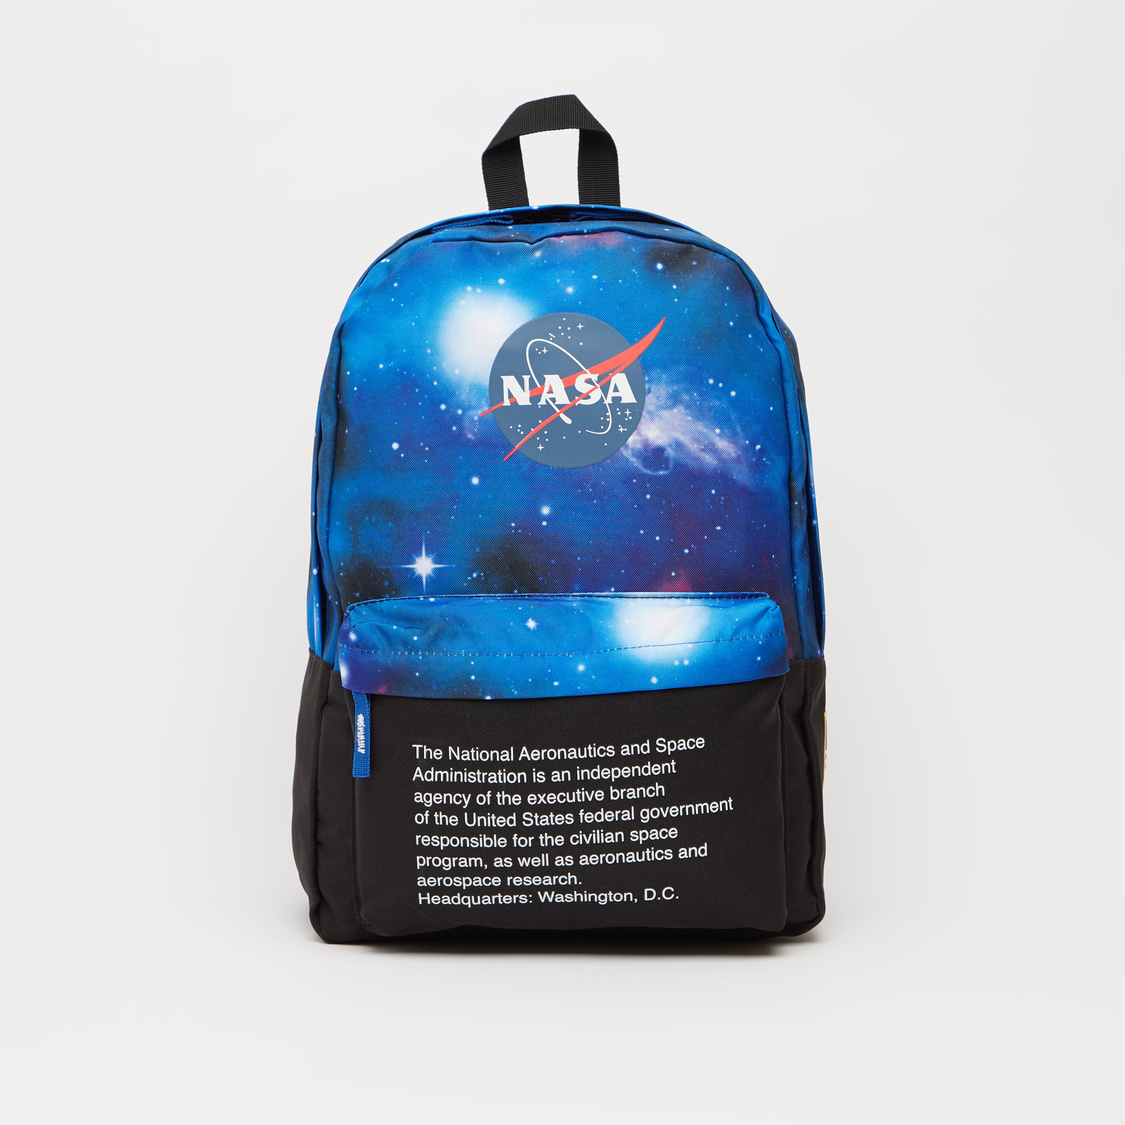 NASA Print Backpack with Adjustable Shoulder Straps - 16 Inches